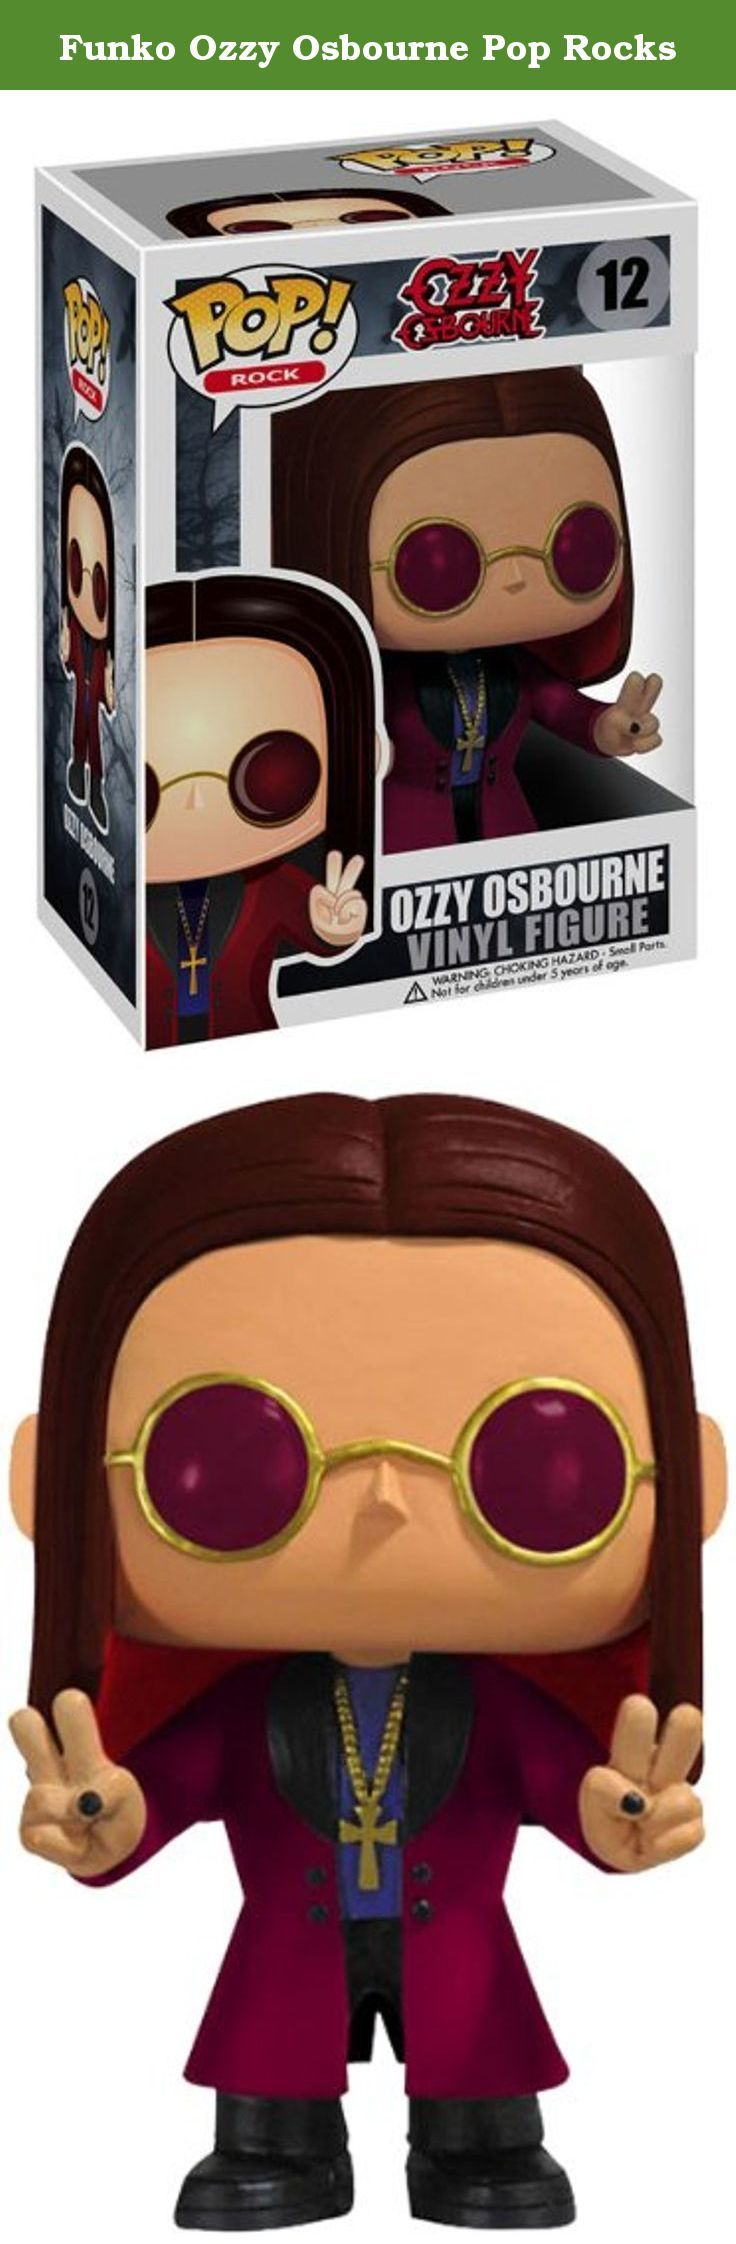 Funko Ozzy Osbourne Pop Rocks. Funko Pop Rock Ozzy Osbourne Vinyl Figure This Pop Rock Ozzy Osbourne vinyl figure has a rotating head and comes in a displayable window box. Keep one on the dashboard of your crazy train. It's rocking and adorable. Its head turns and looks amazing. Relive the music experience. Product Dimensions (inches): Age: 3 years and up Recommended Ages:3 and up.